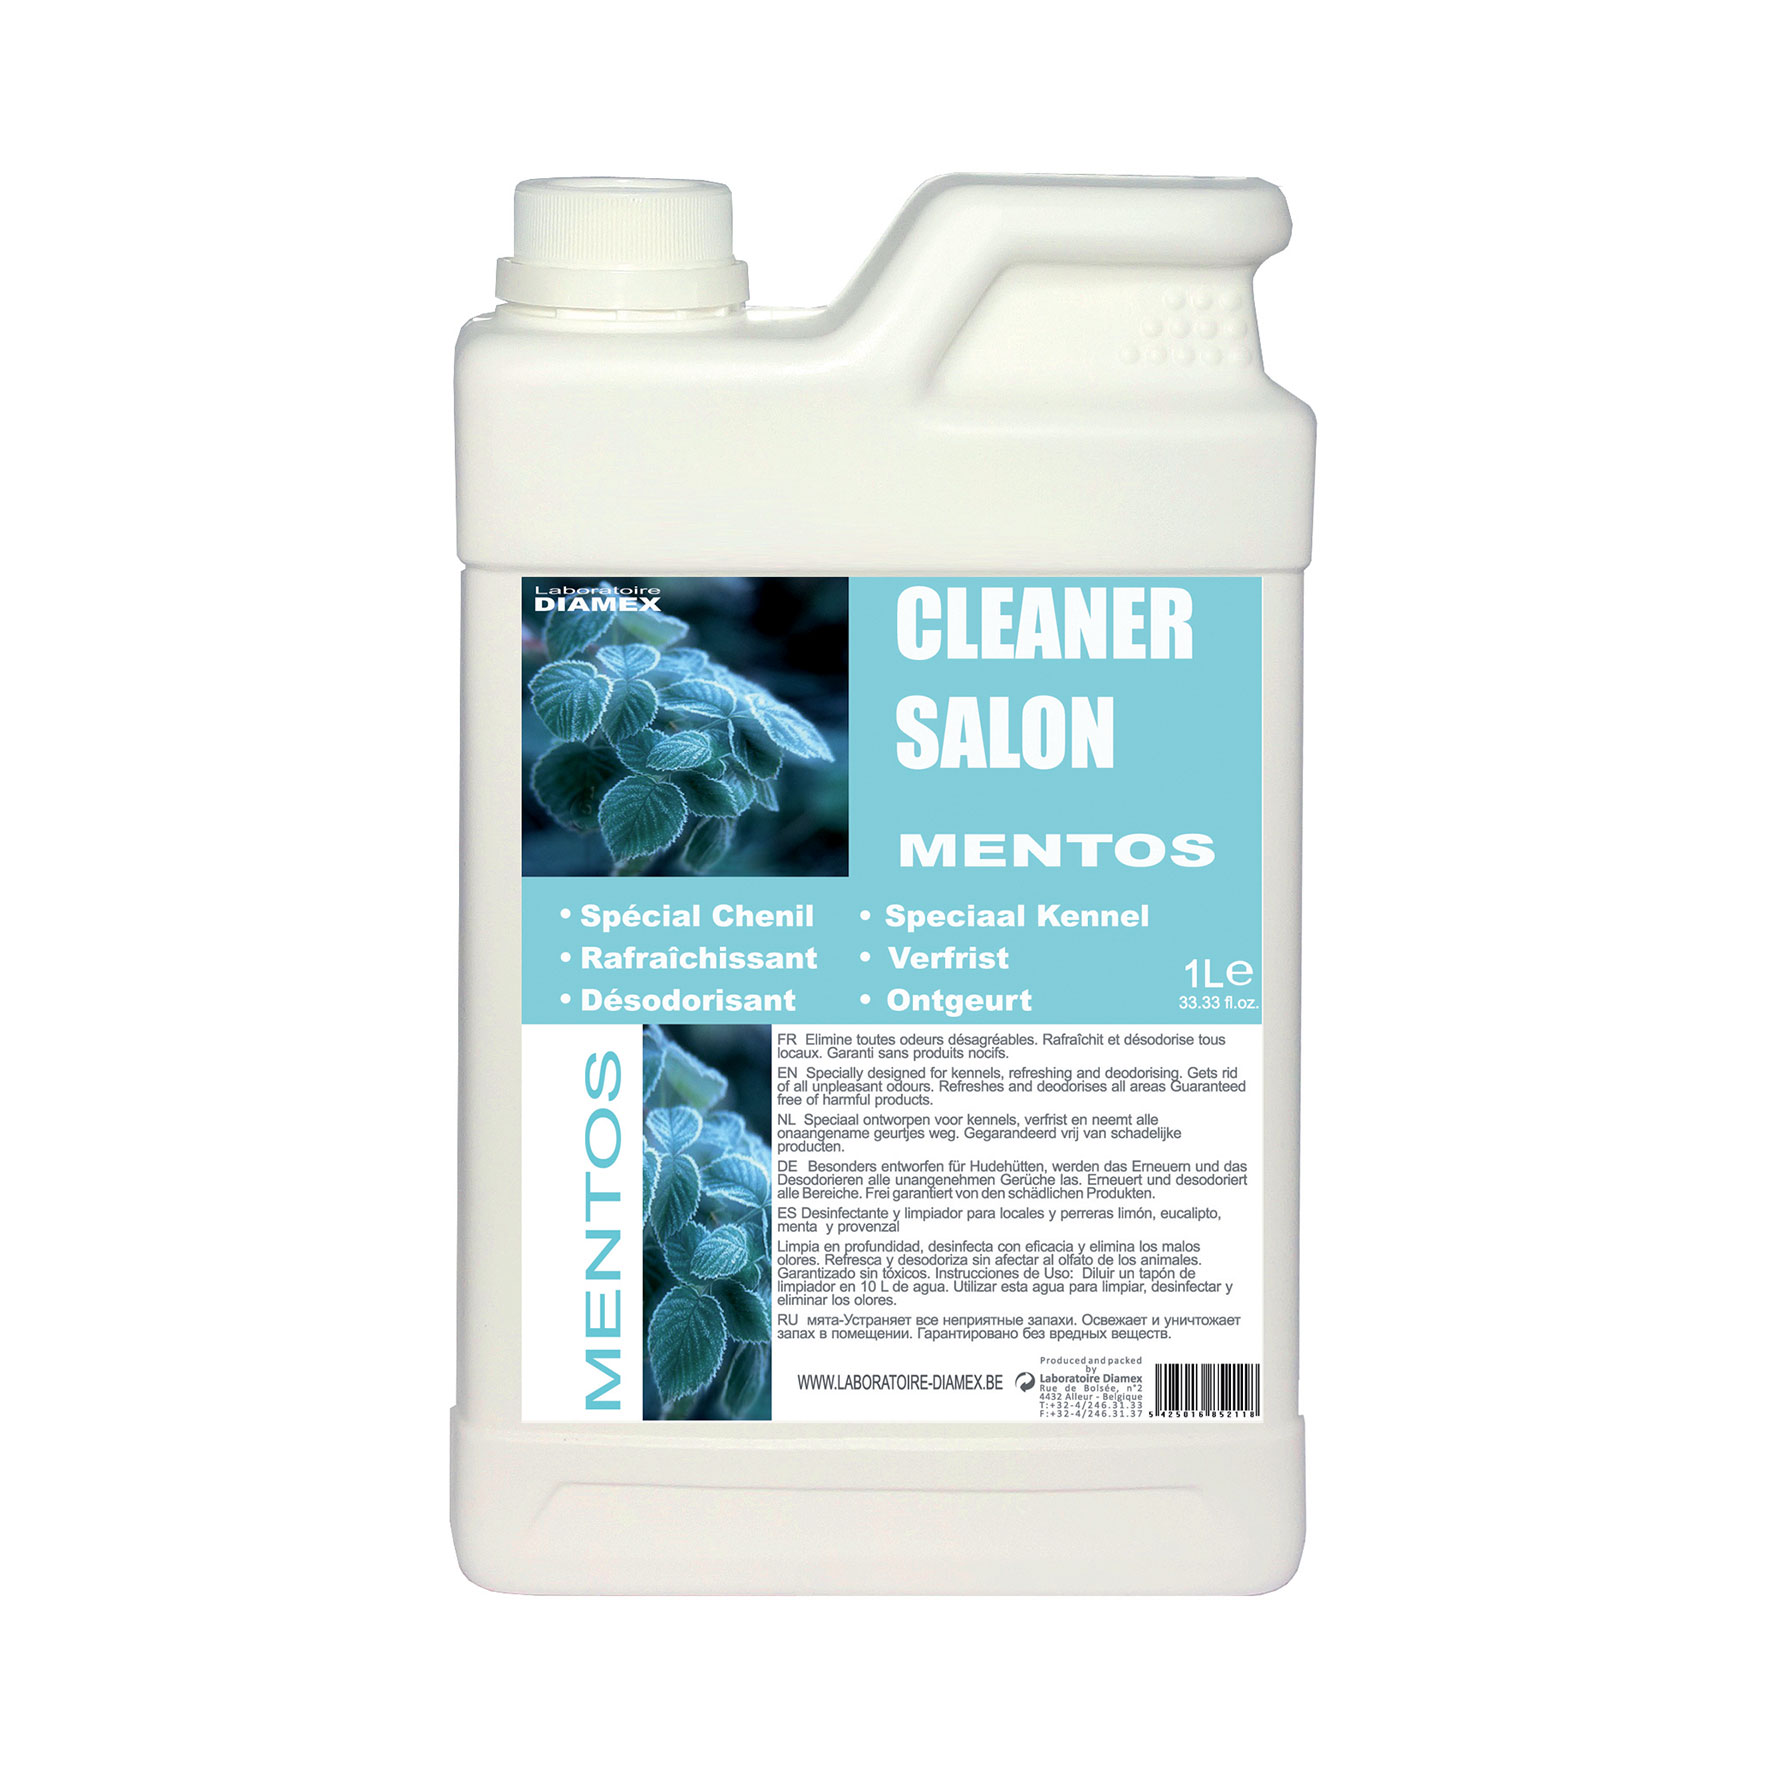 Nettoyant Diamex Cleaner Salon Mentos